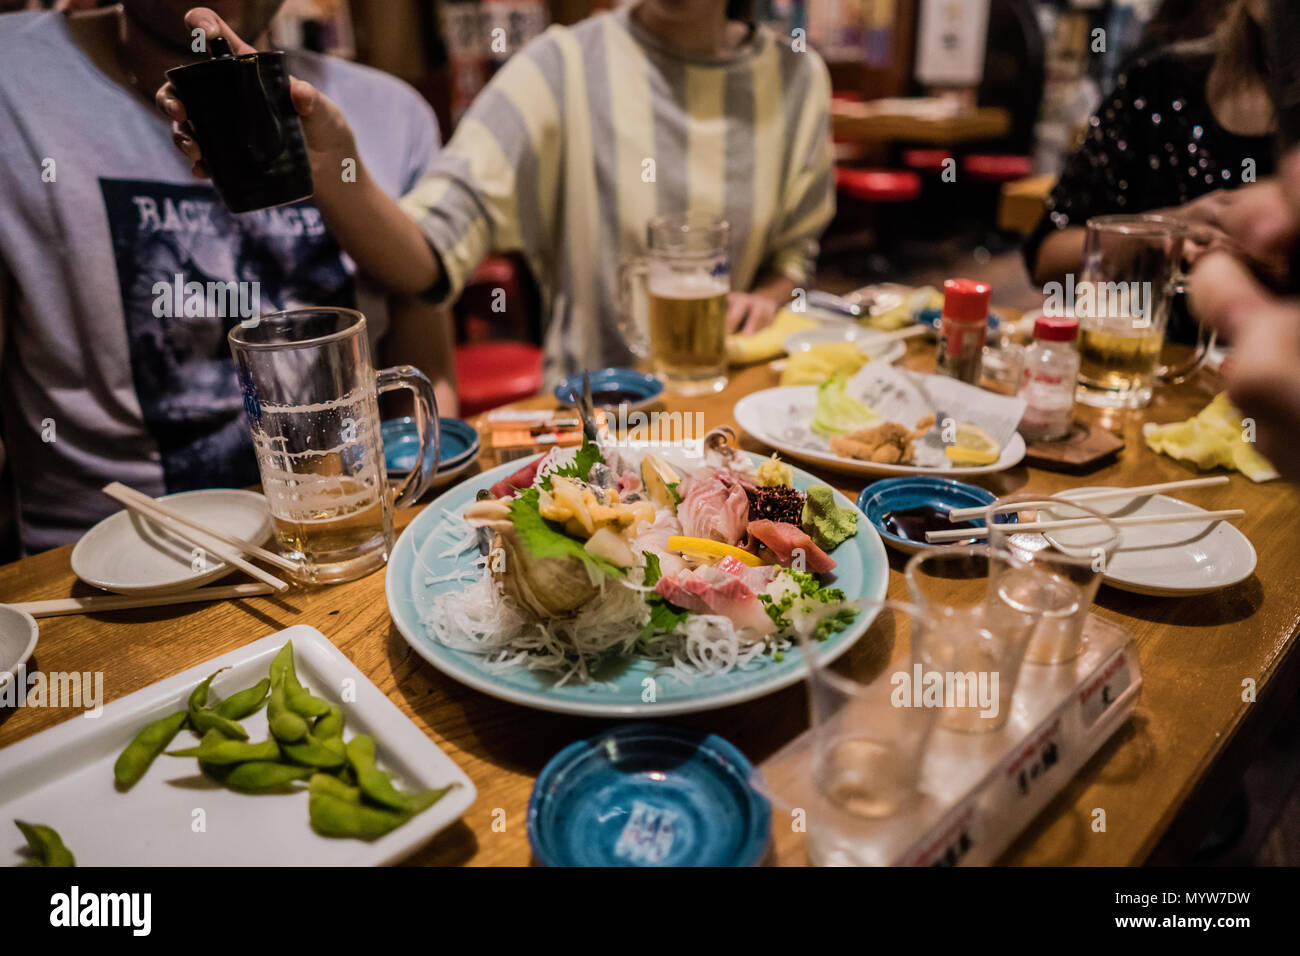 Sashimi in Japan - Stock Image